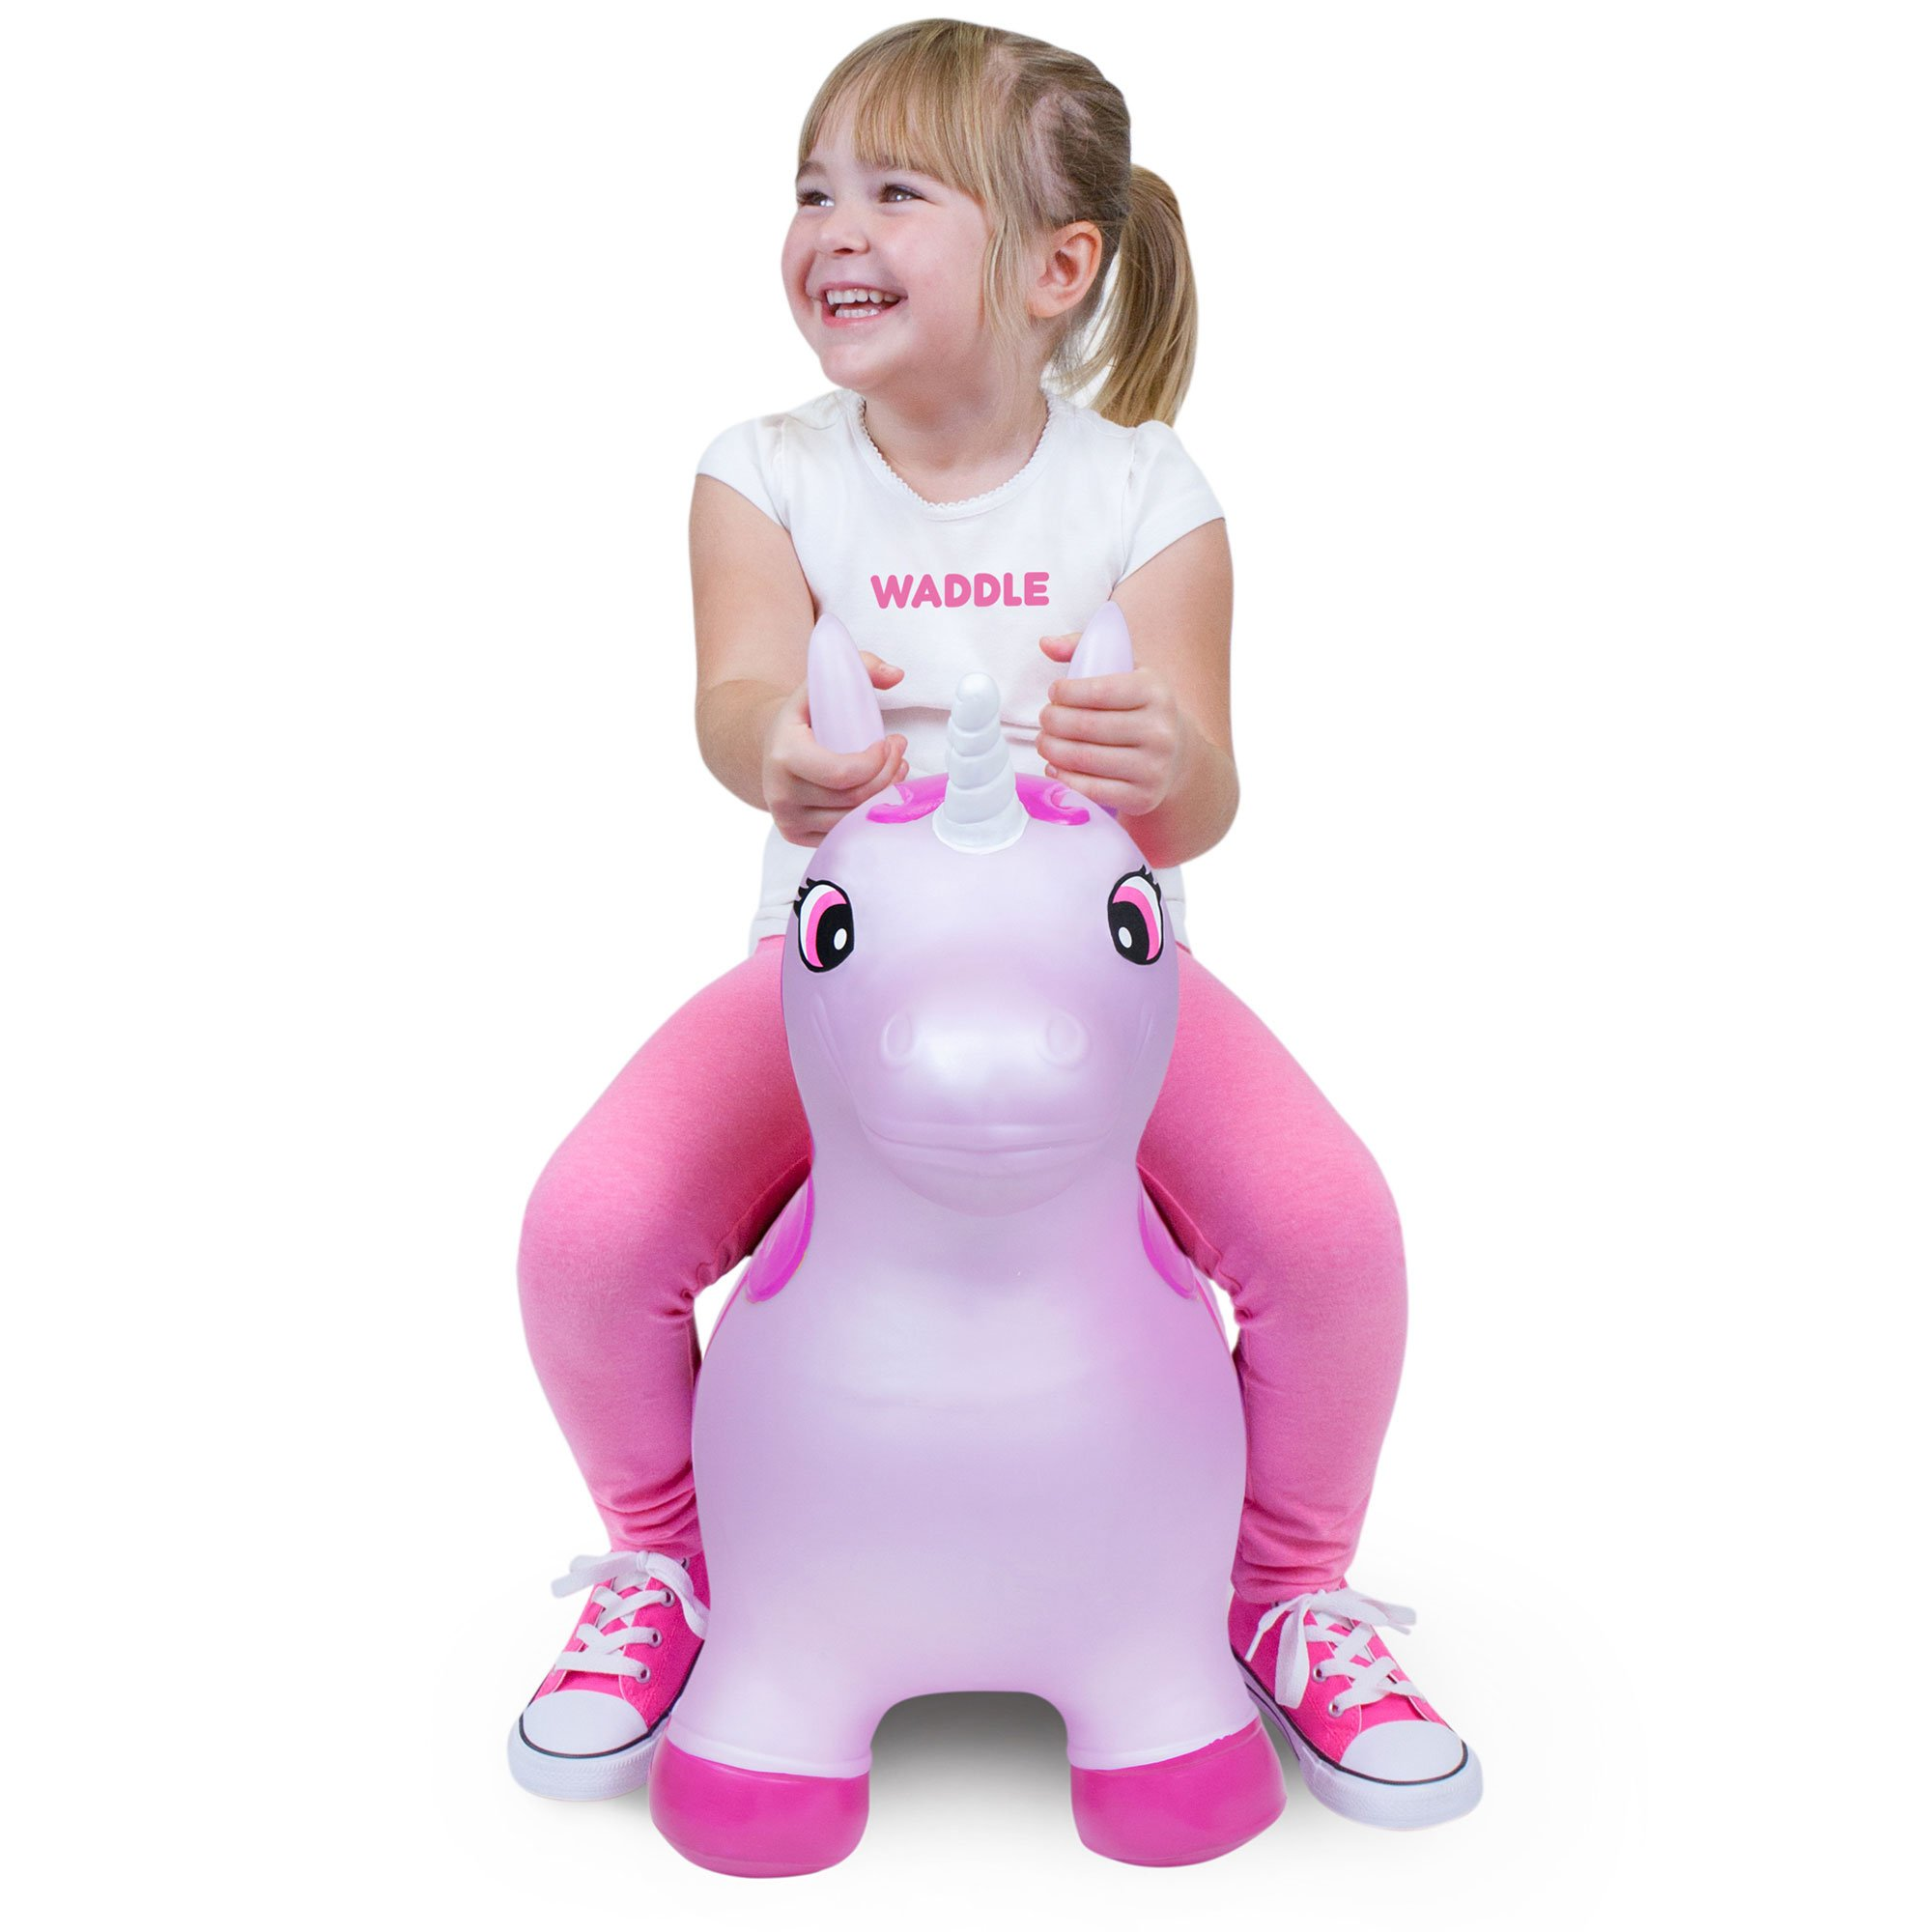 WADDLE Favorite Pink Unicorn Toy Hopper Ride On Inflatable Animal Kids Riding Bouncy Horse For Girls Twilight Sparkle Magical Pony Interactive for Toddlers and Children Gift Idea